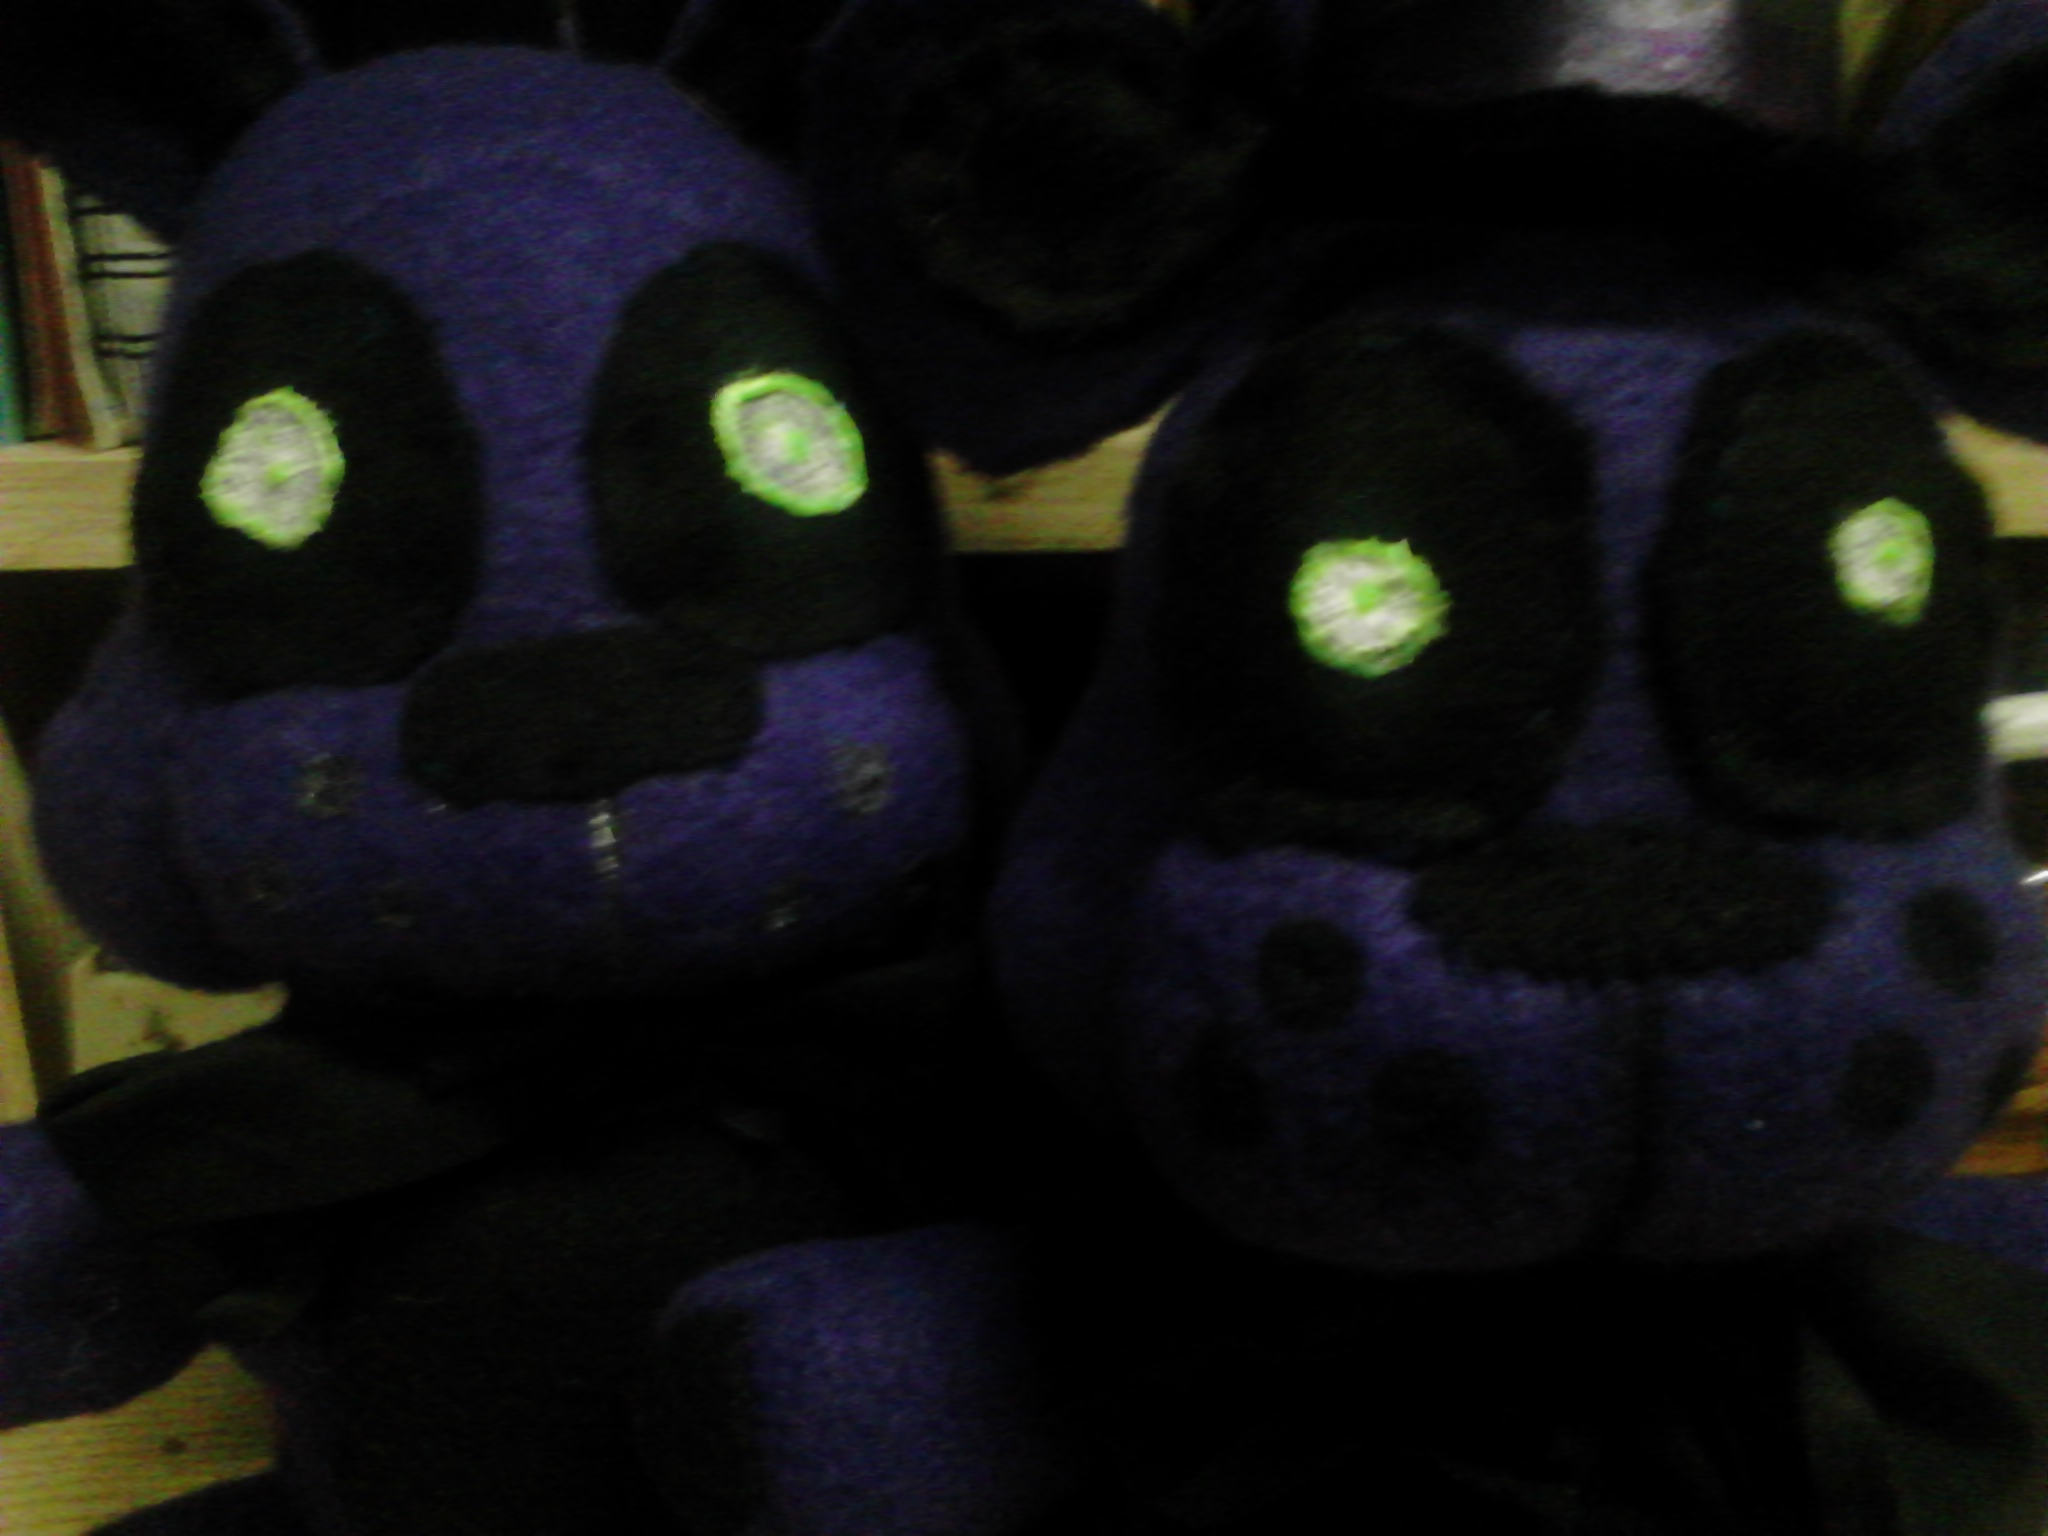 Five Nights At Freddyu0027s Is Awesome Images Shadows 5 HD Wallpaper And  Background Photos